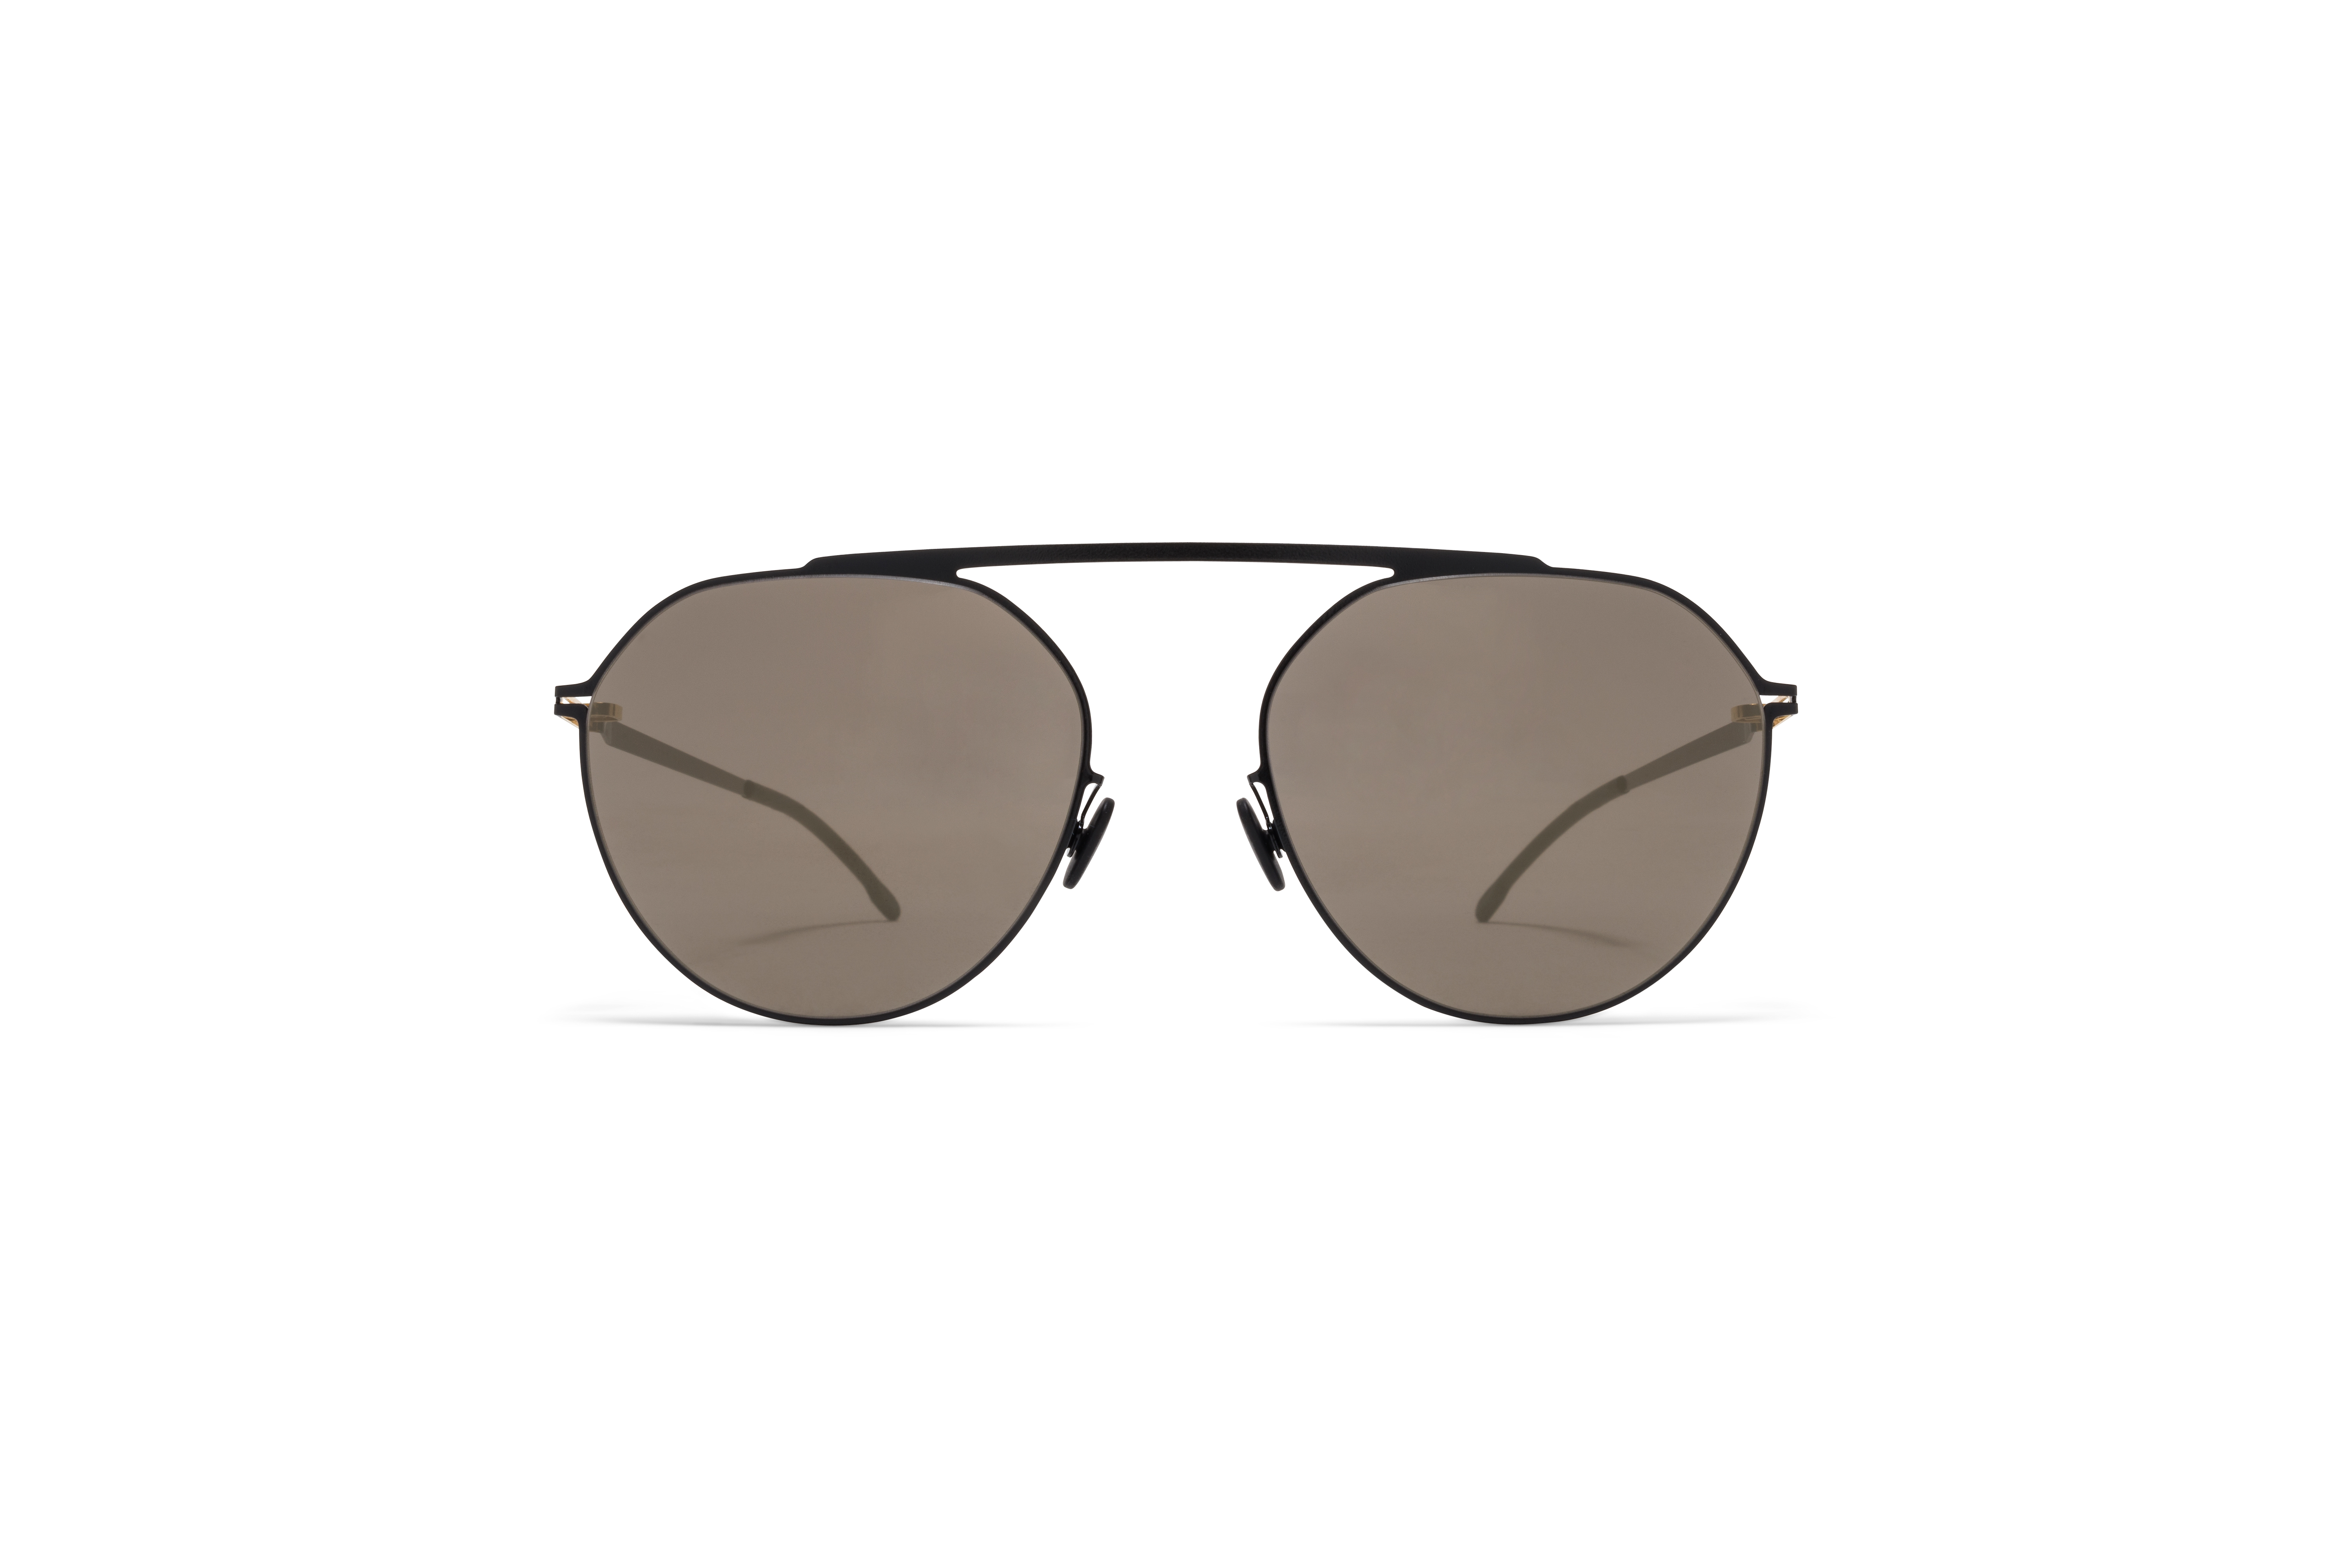 MYKITA Decades Sun Solomon Gold Jet Black Brilliant Grey Solid